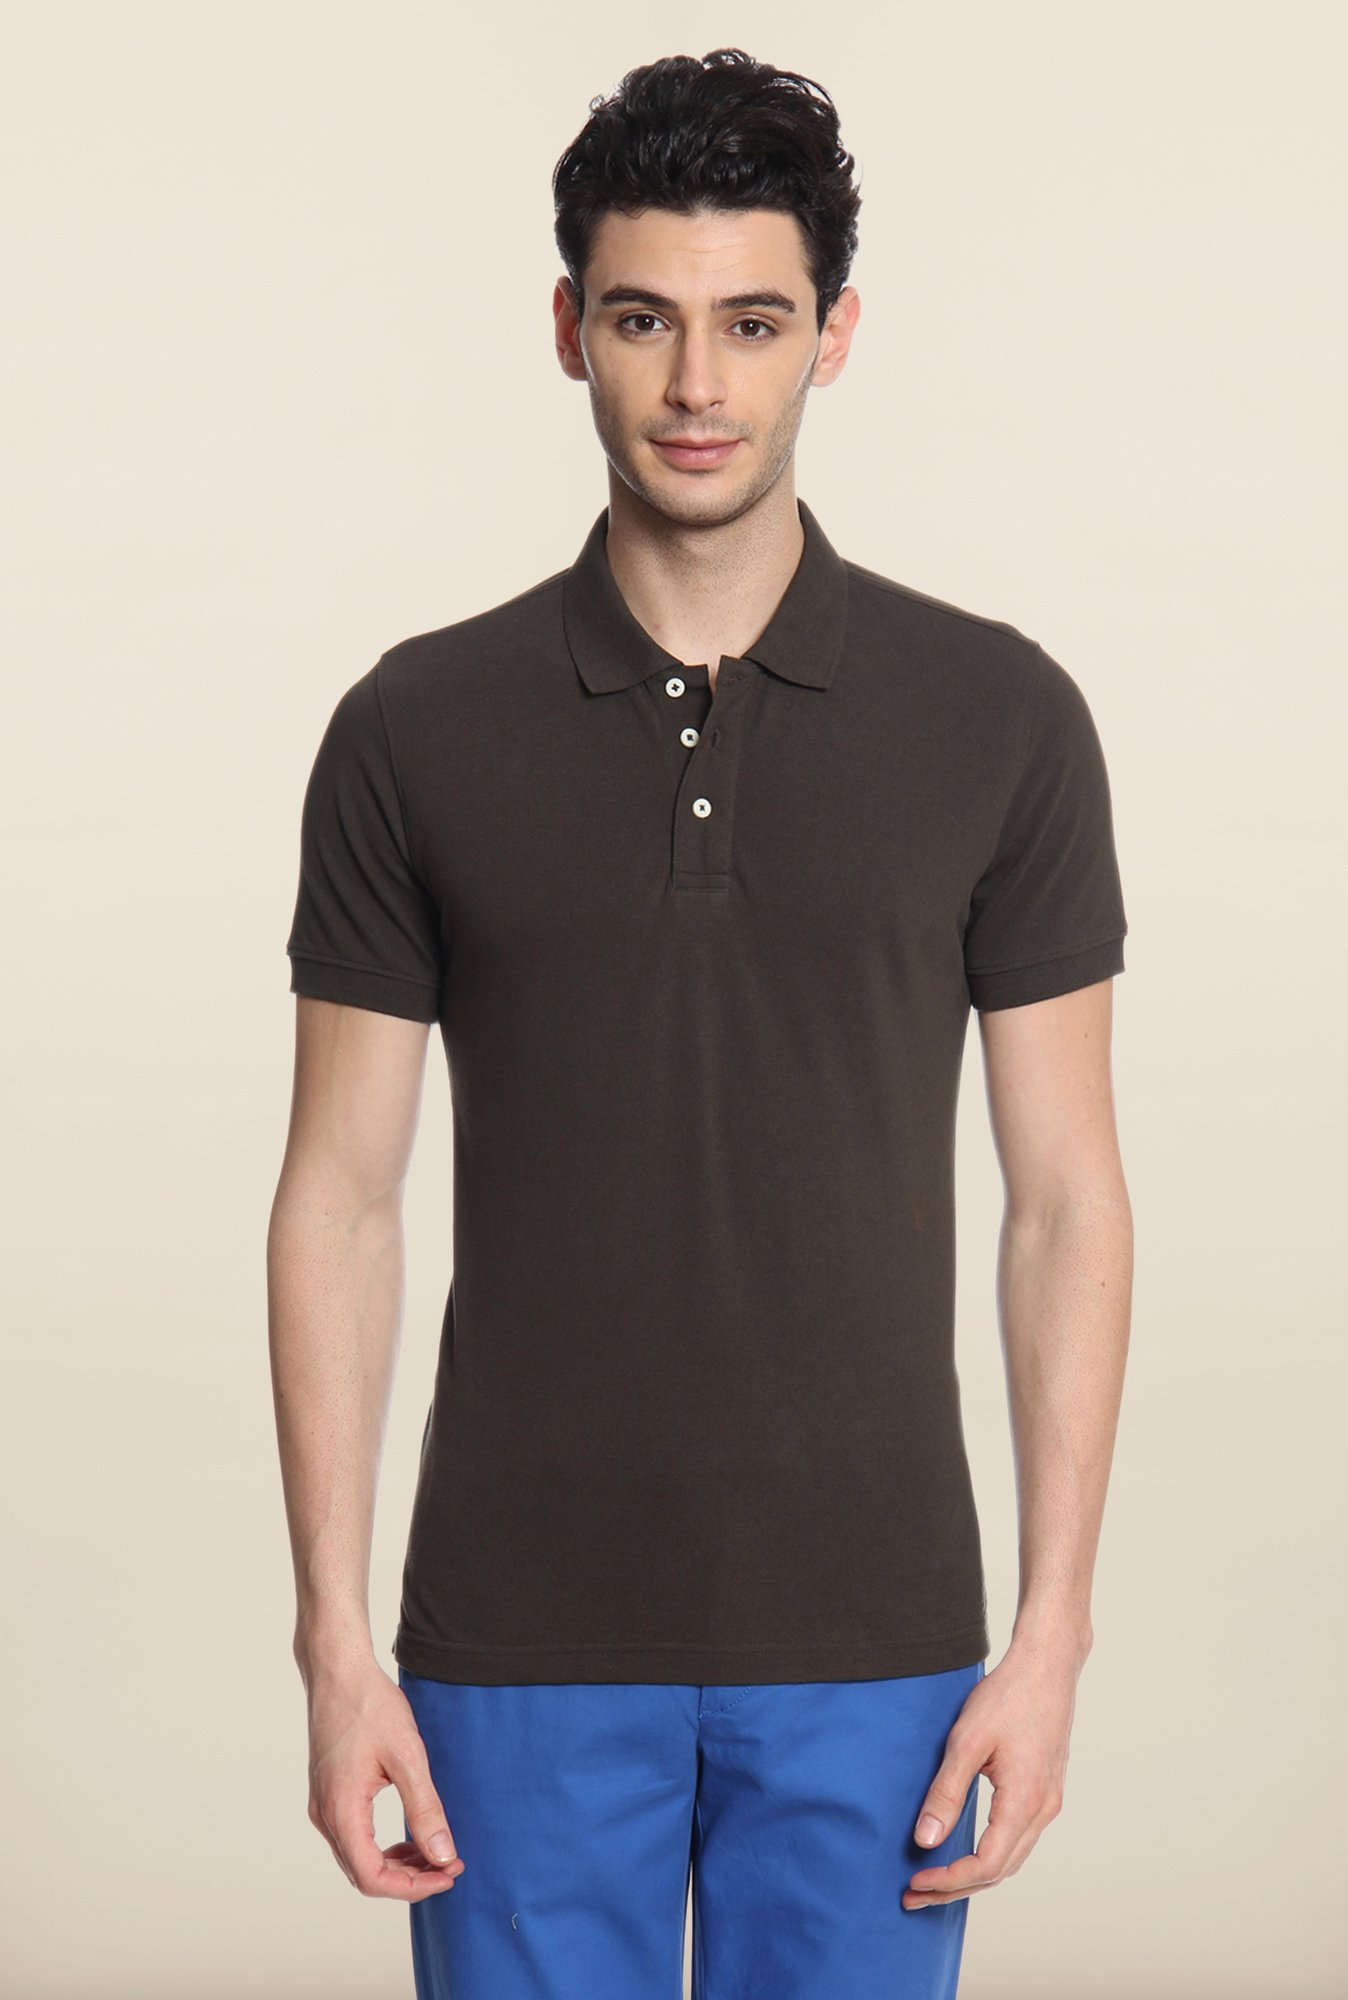 Cottonworld Dark Brown Solid Polo T-Shirt